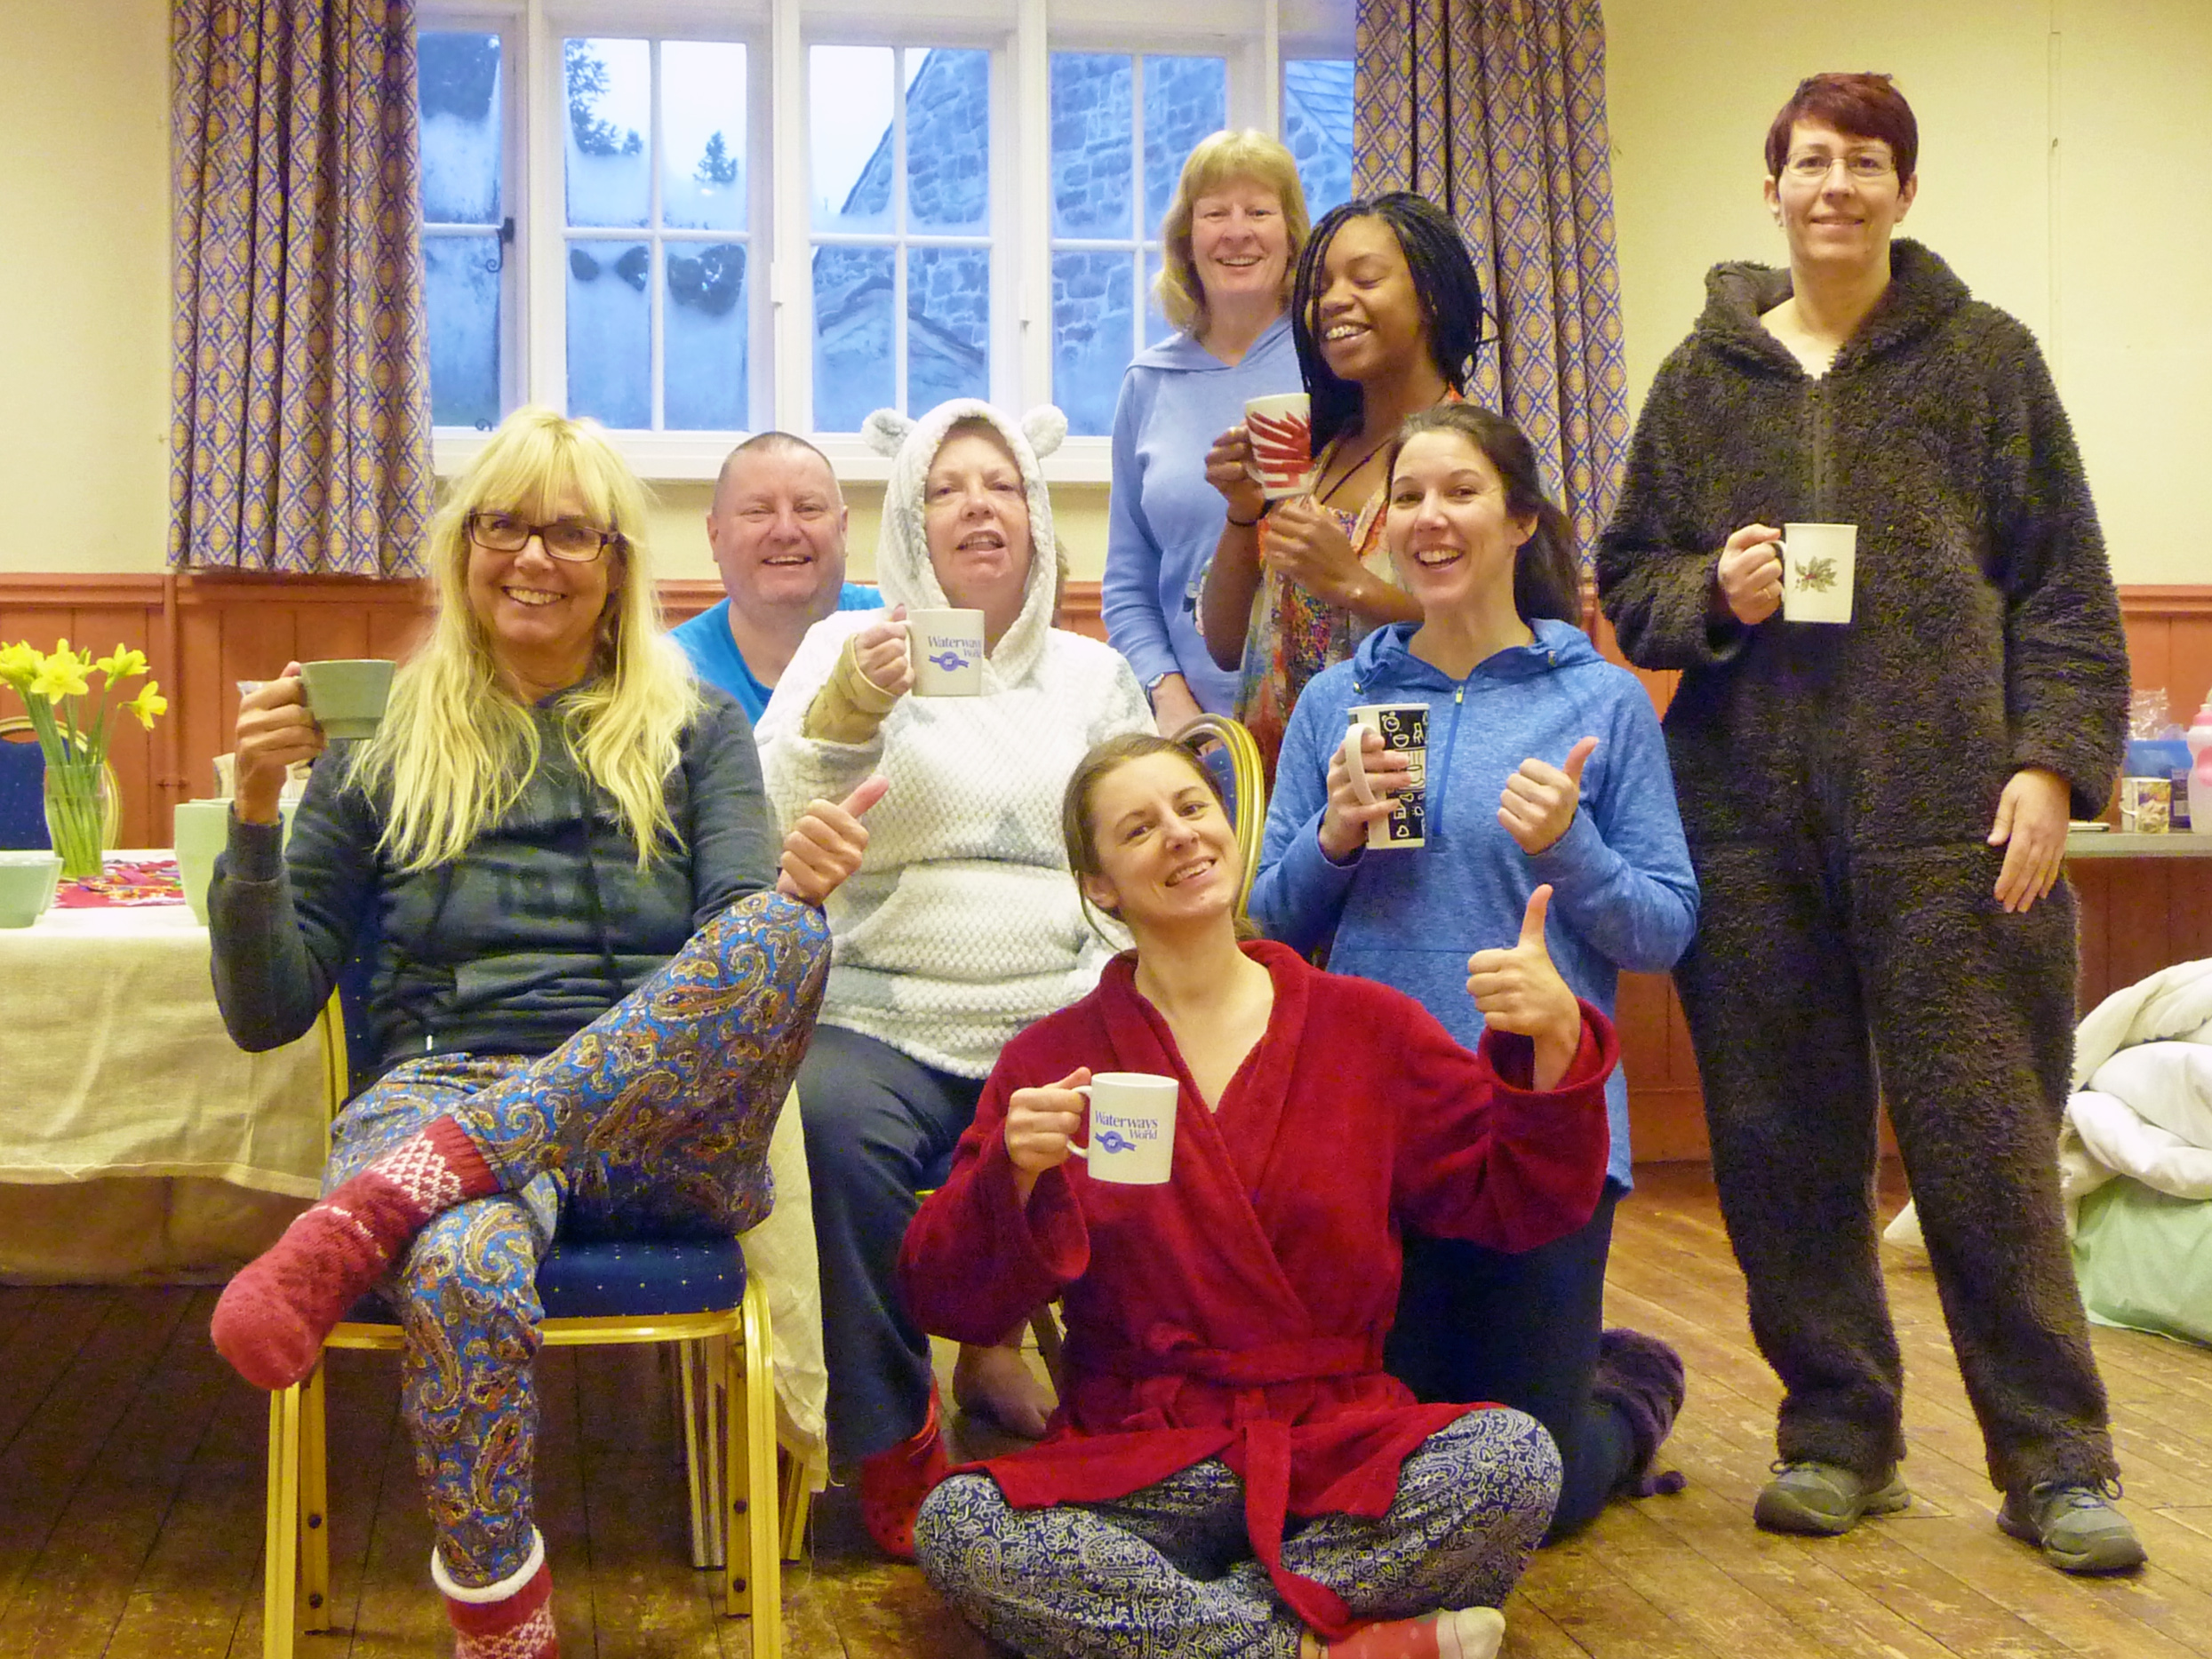 Here we all are in our PJ's and onesies... having just woken up, drinking mugs of hot lemon and ginger water before morning yoga! ha ha